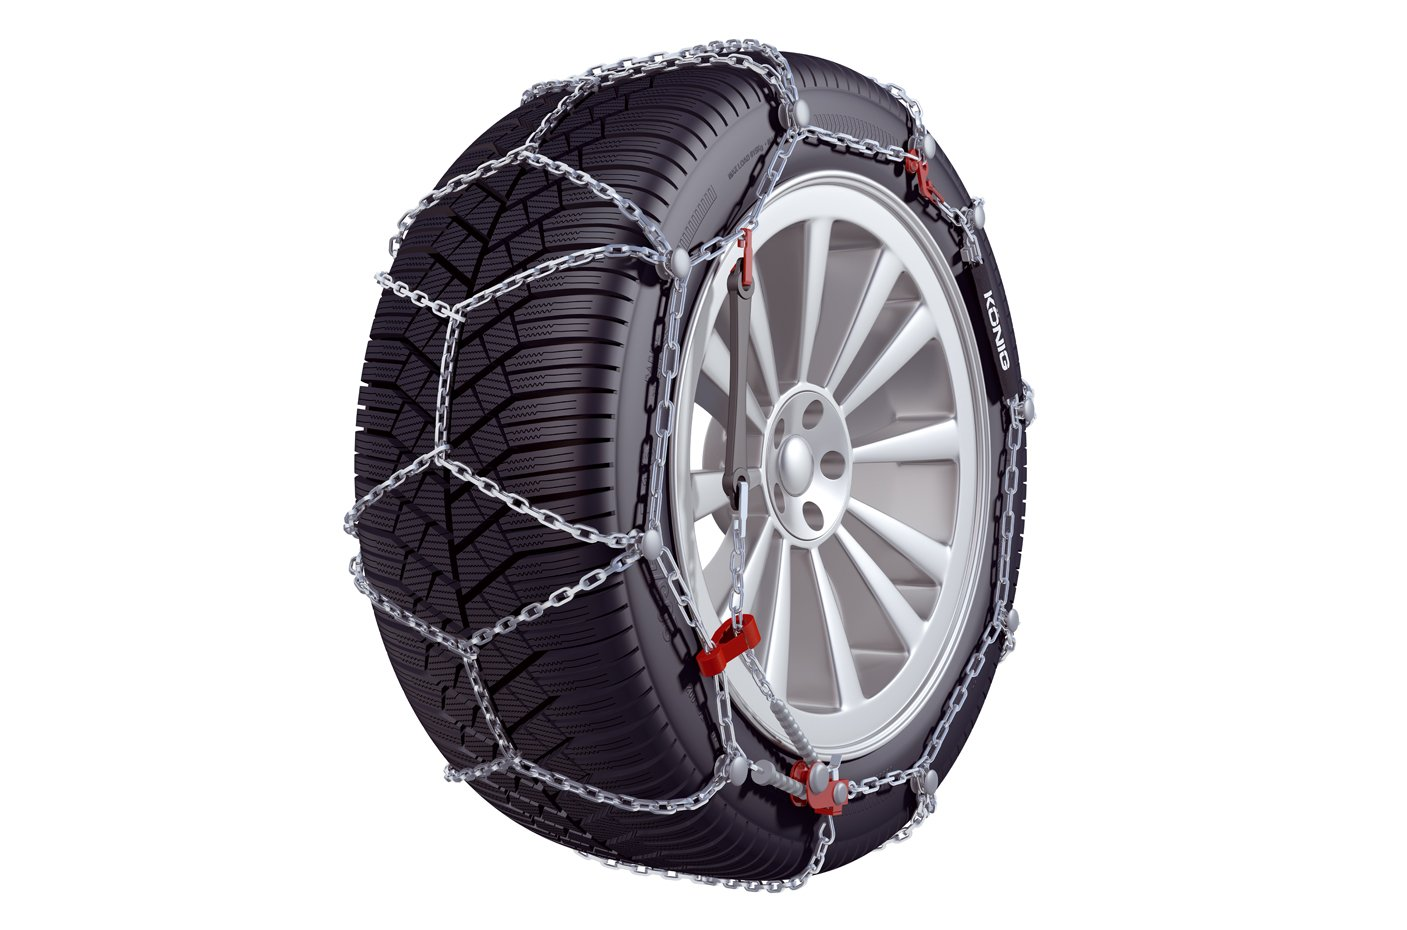 KÖ NIG CD-9 104 Snow chains, set of 2 Thule GmbH. 2004305104